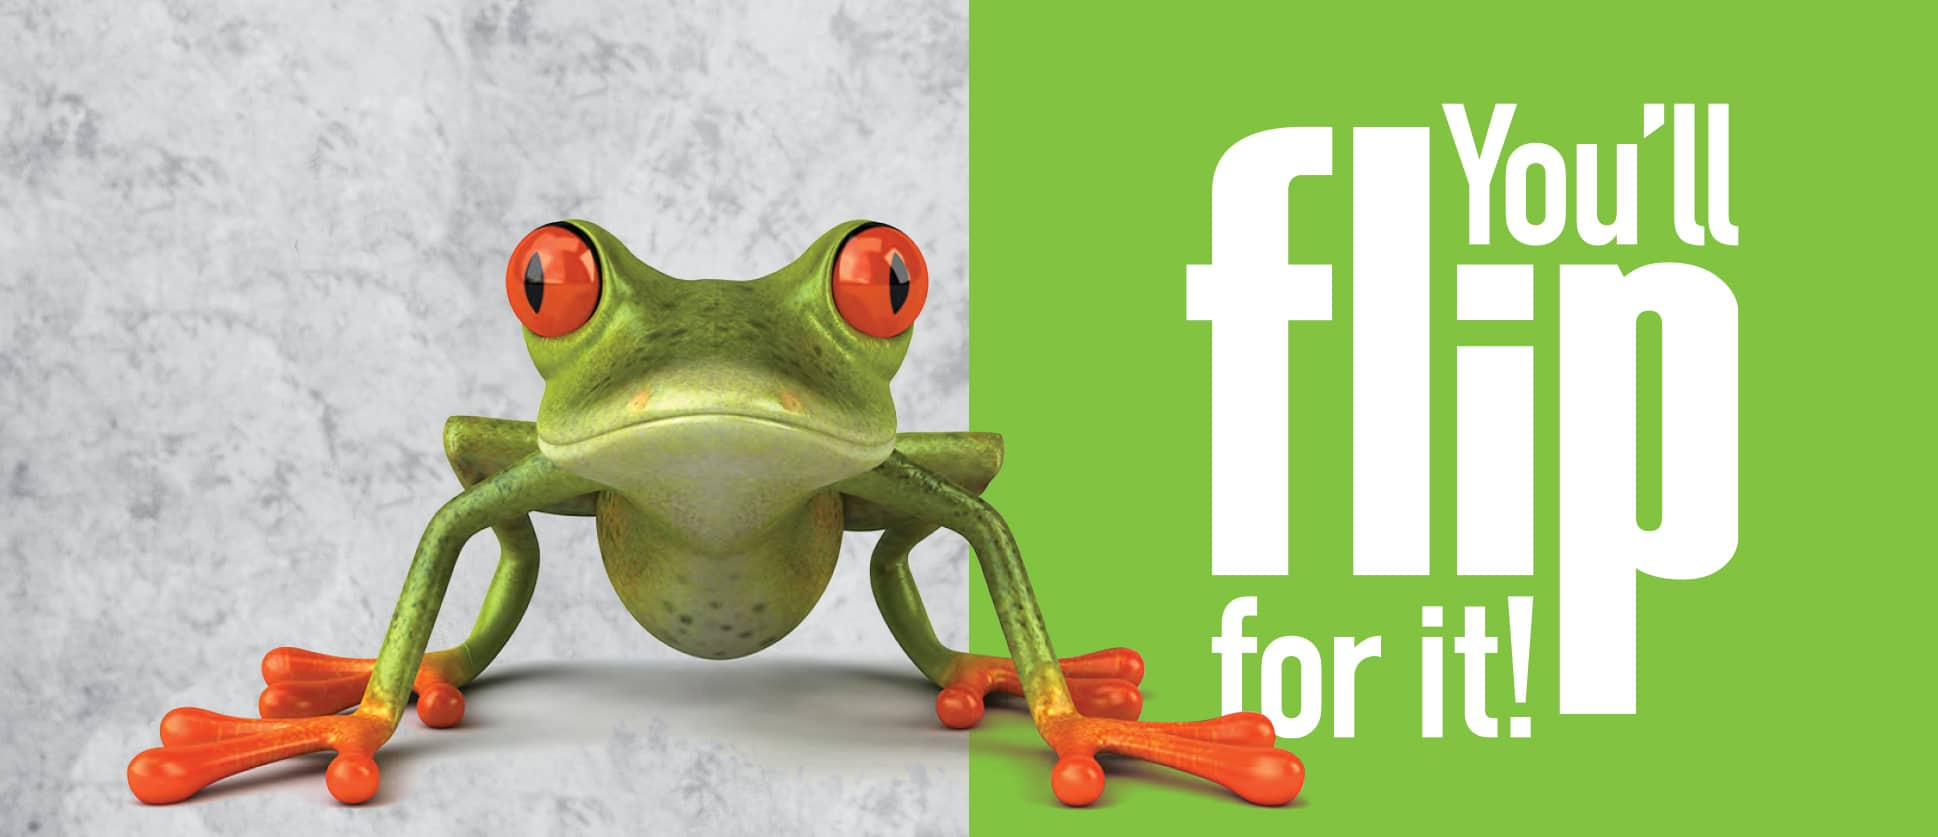 Frog with text: You'll flip for it!